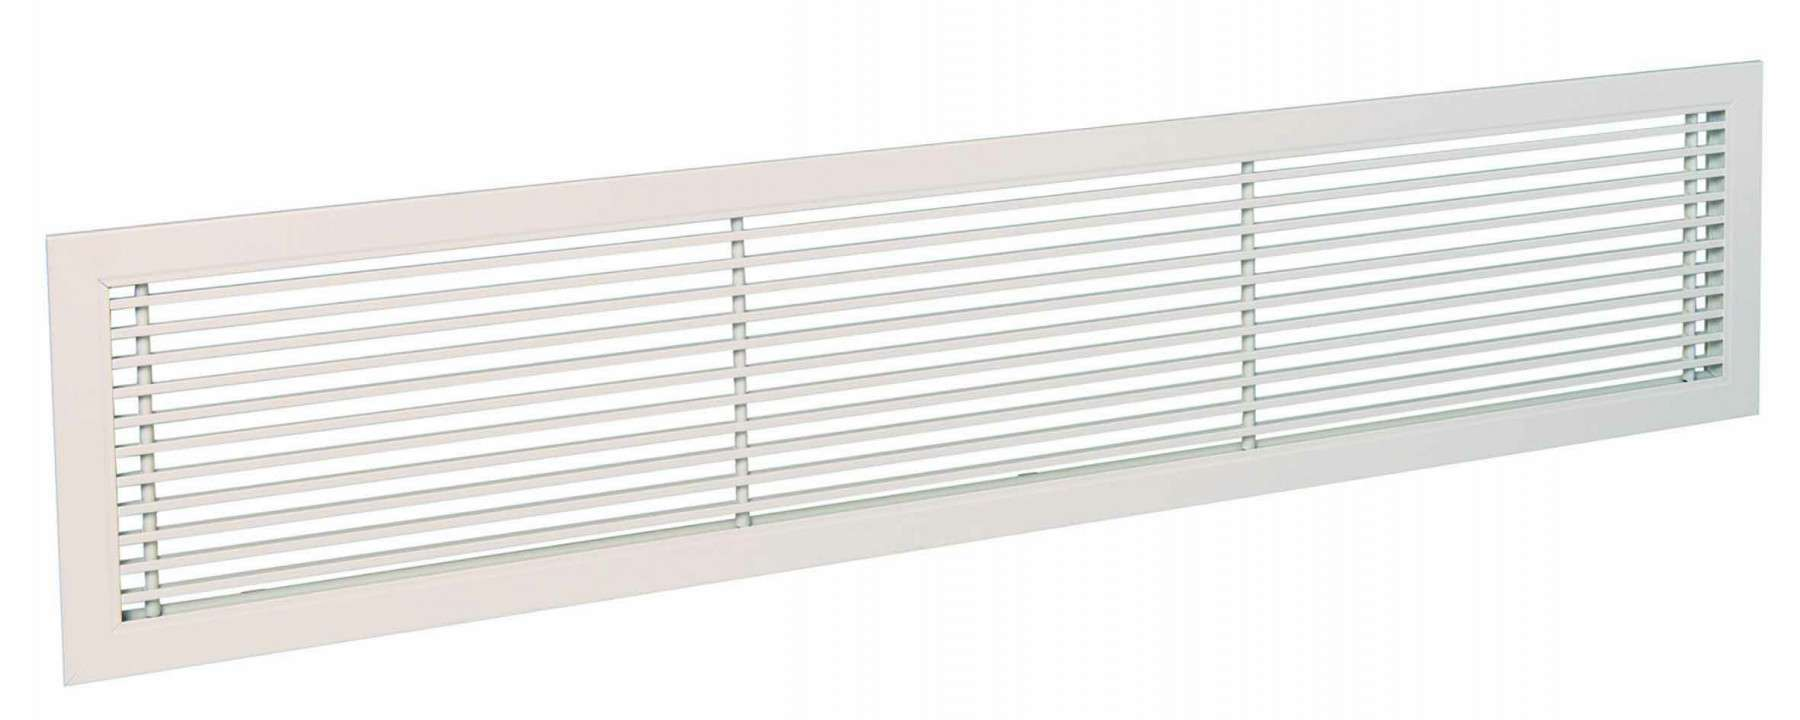 Grilles intérieures GRIDLINED WALL F3 1000X100 RAL9010 Aldes 11050568